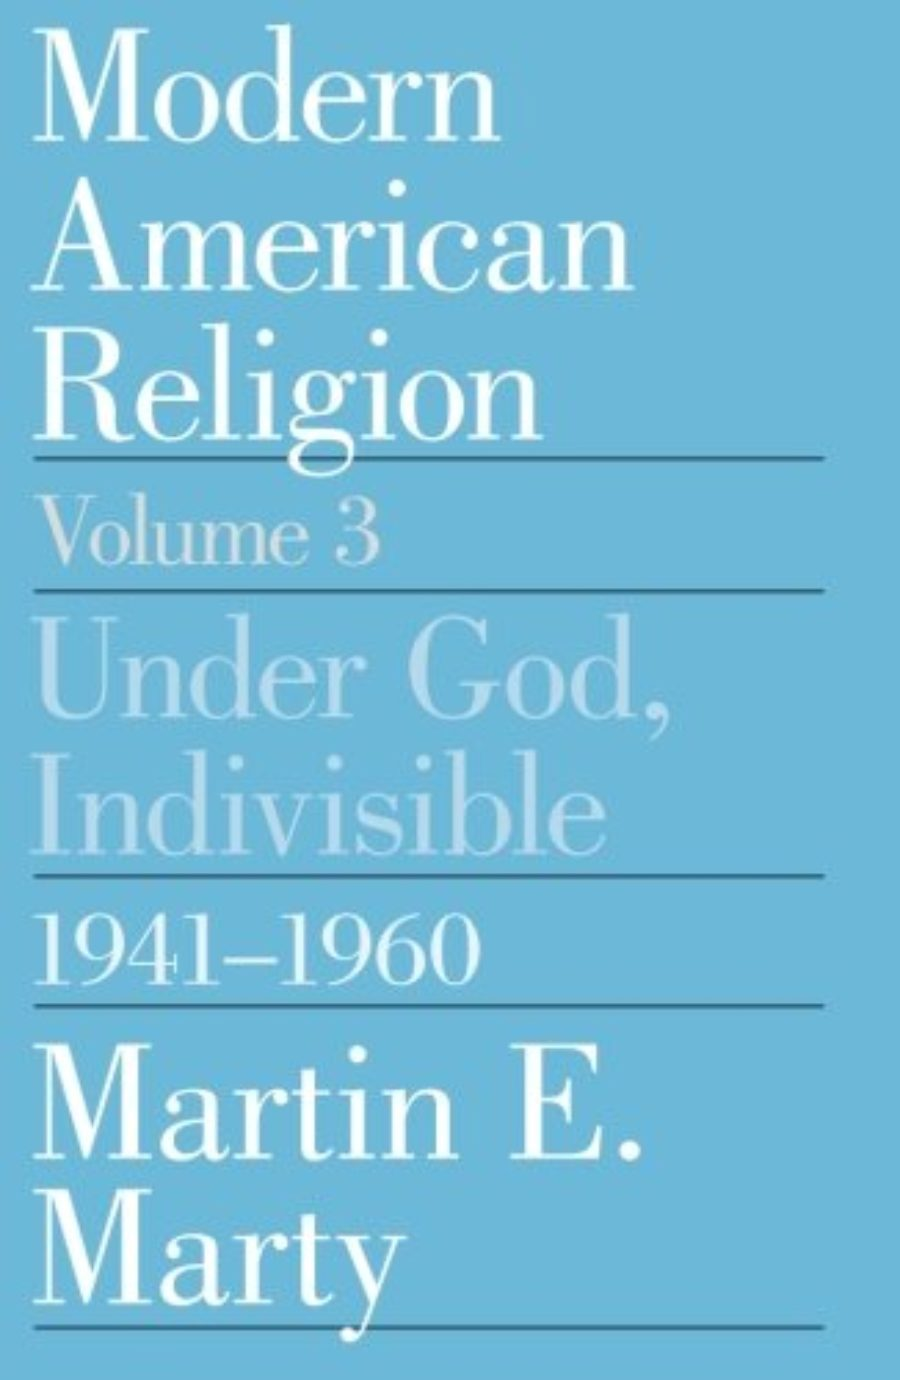 Cover of Modern American Religion, Volume 3: Under God, Indivisible, 1941-1960